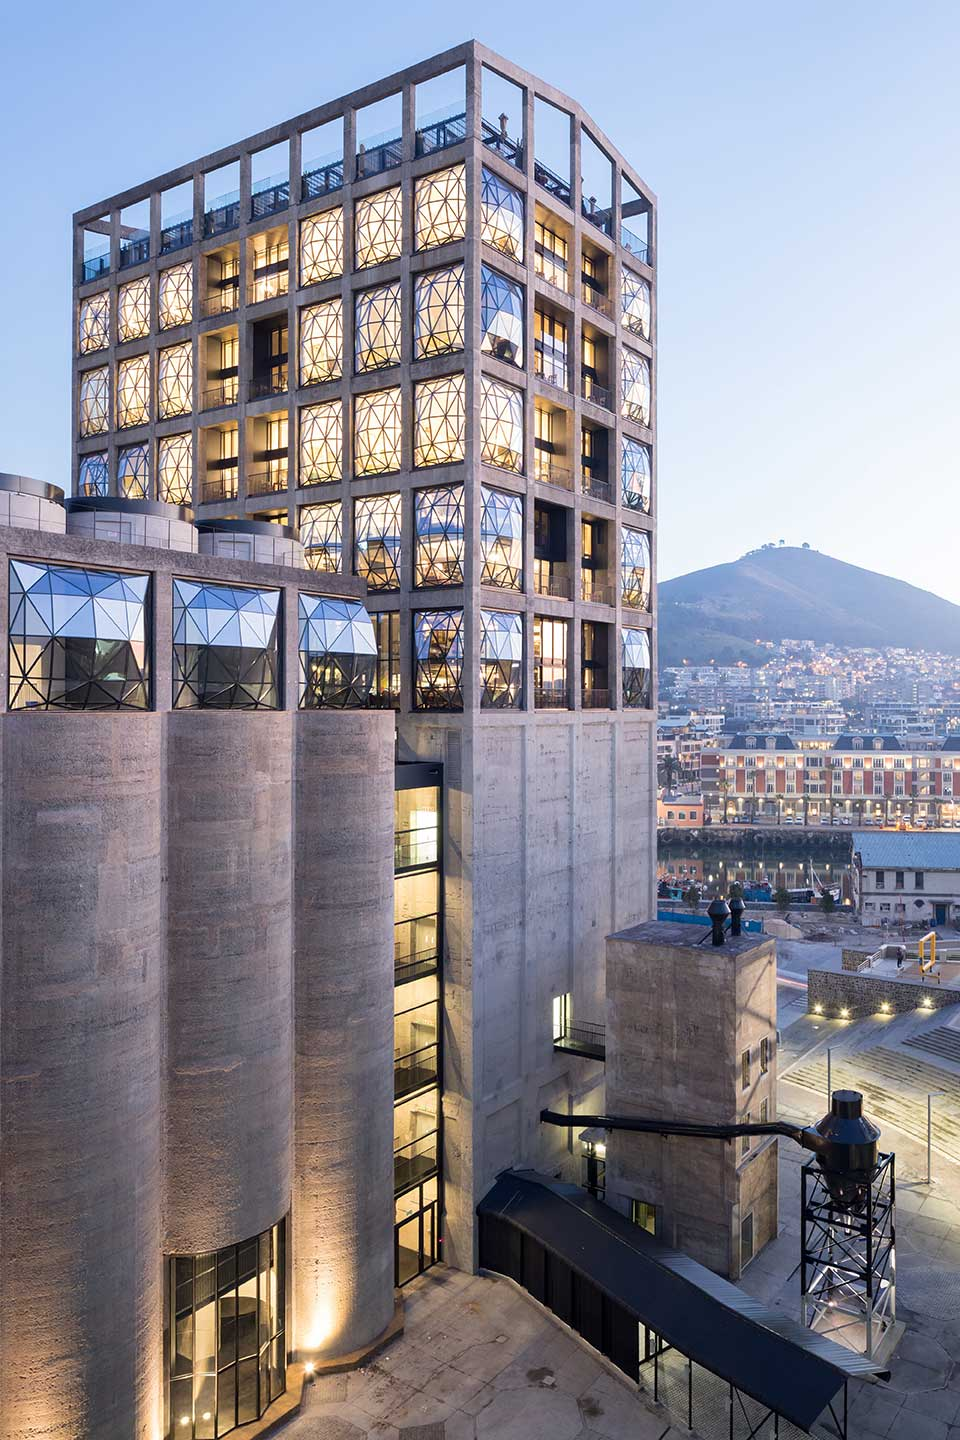 Revitalising art in the Mother City